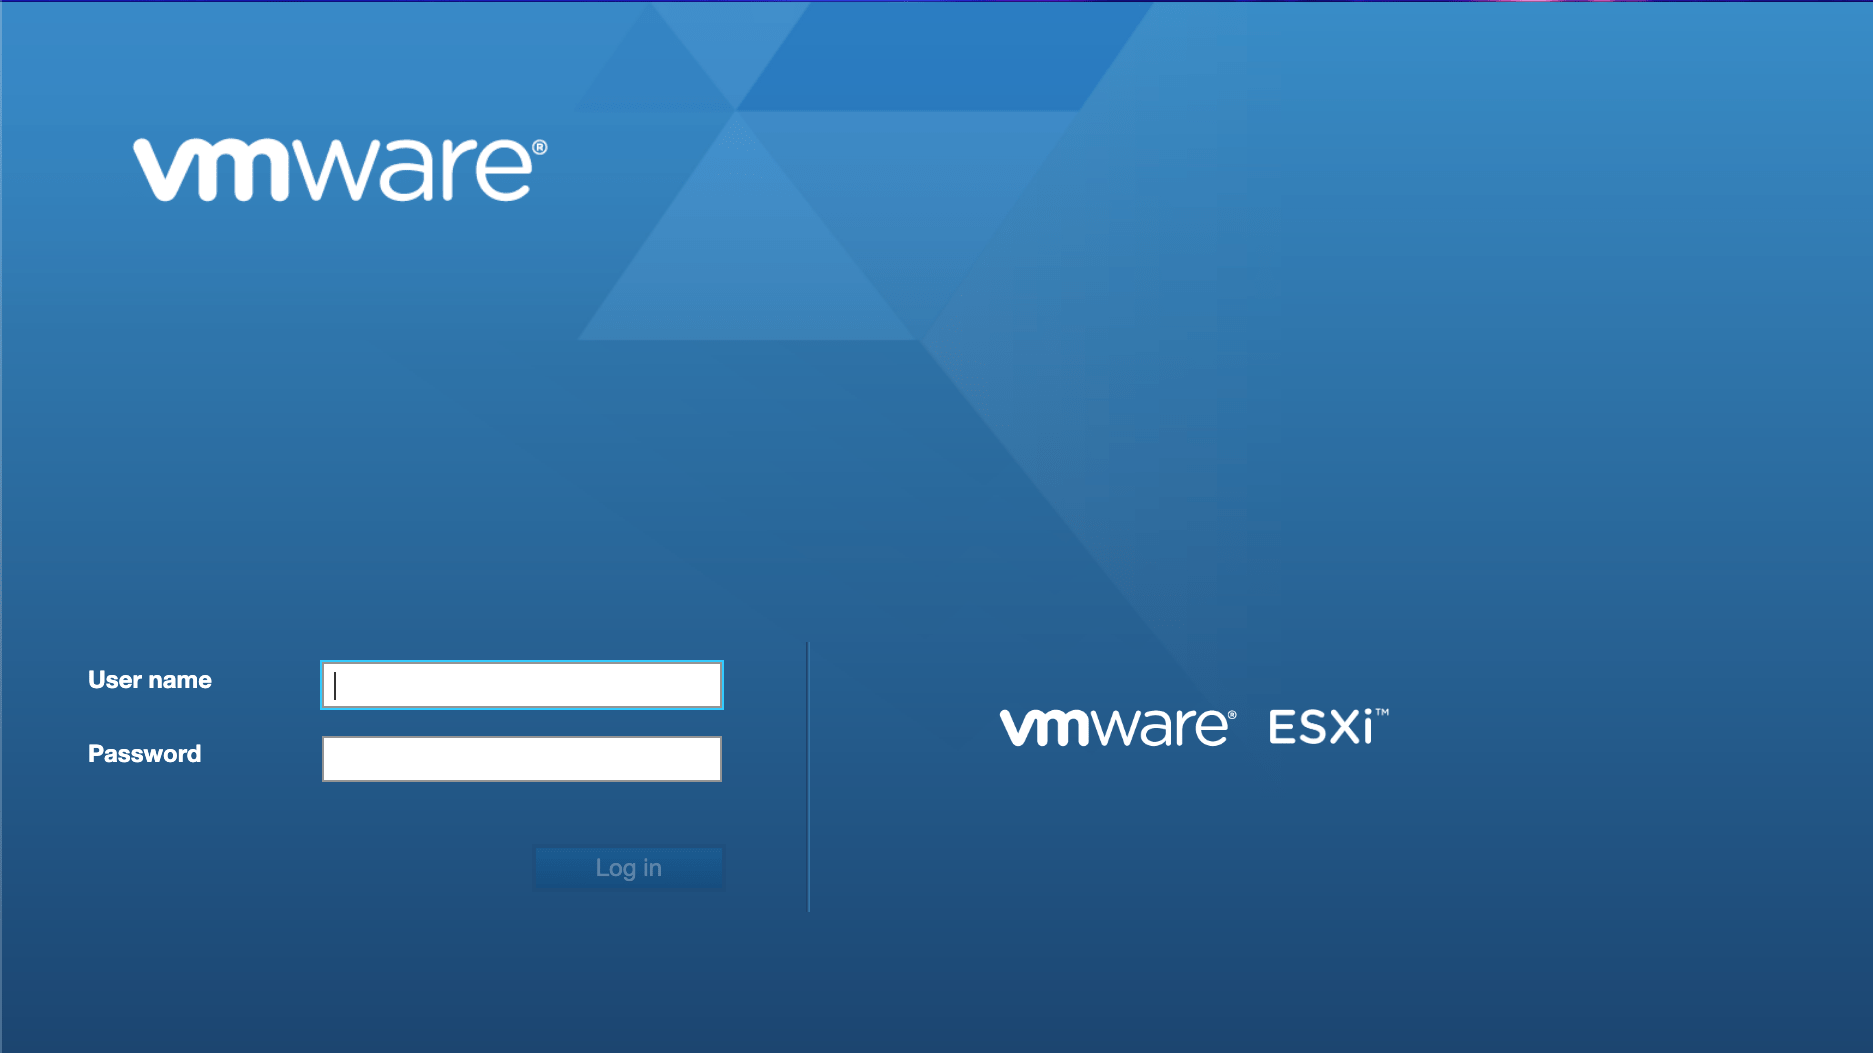 VMware ESXi – Setting Up a Home Virtualization Server